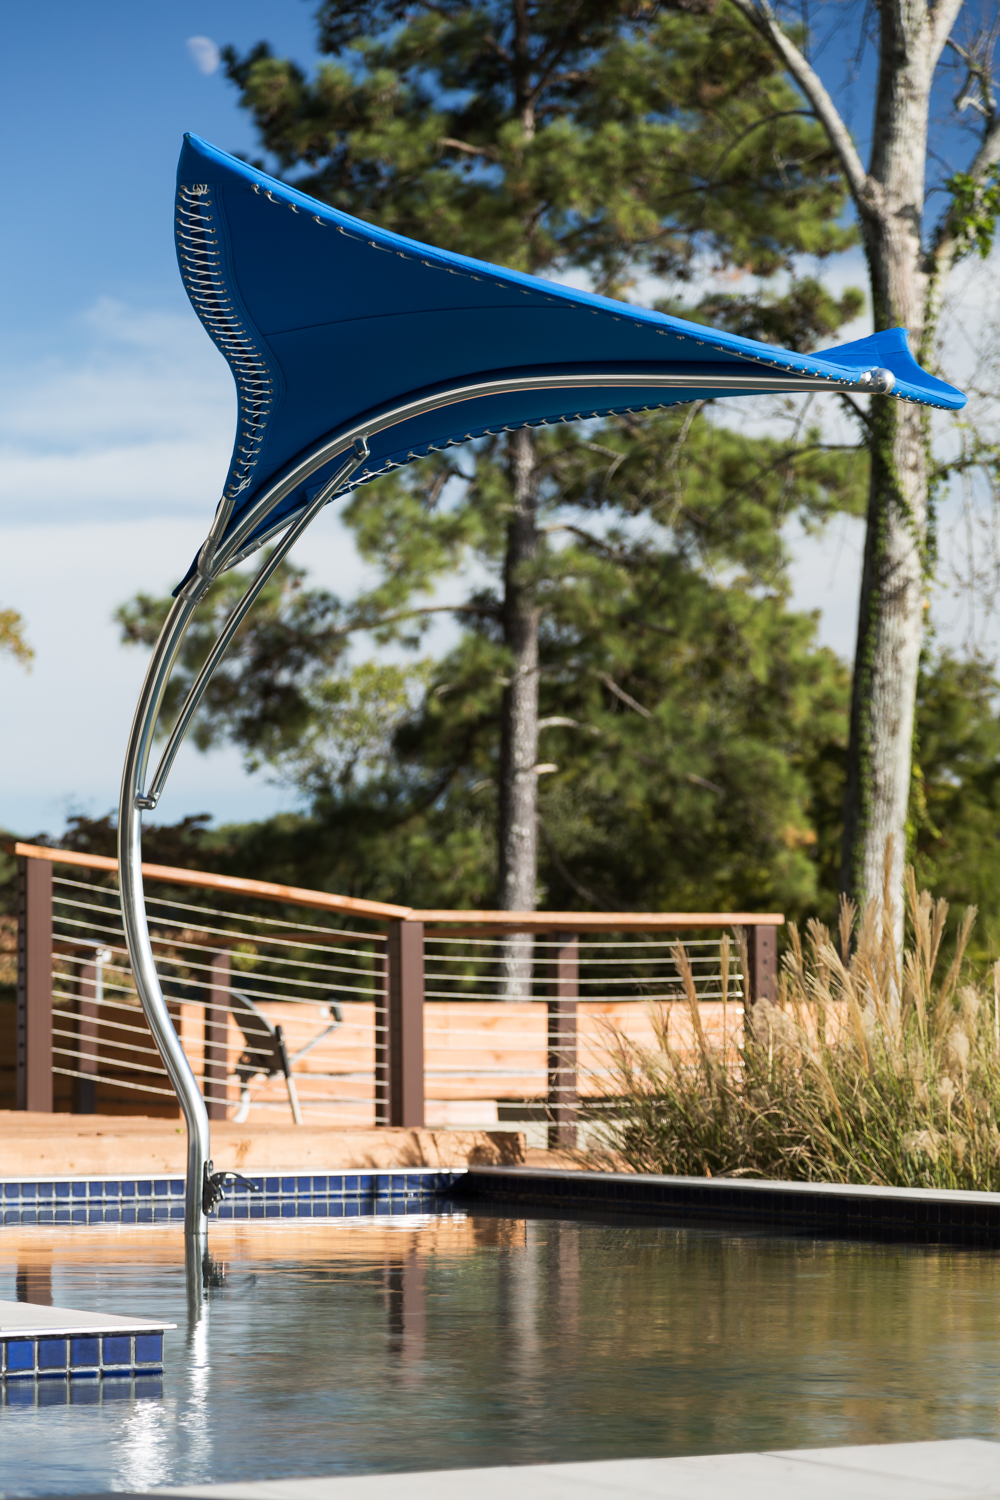 Alexander Modern Homes recently added these Manta outdoor umbrellas by Tuuci as part of their offerings. I've never seen a more impressive, and solidly constructed outdoor umbrella. They are expensive but you can really see a major difference in style and craftsmanship!